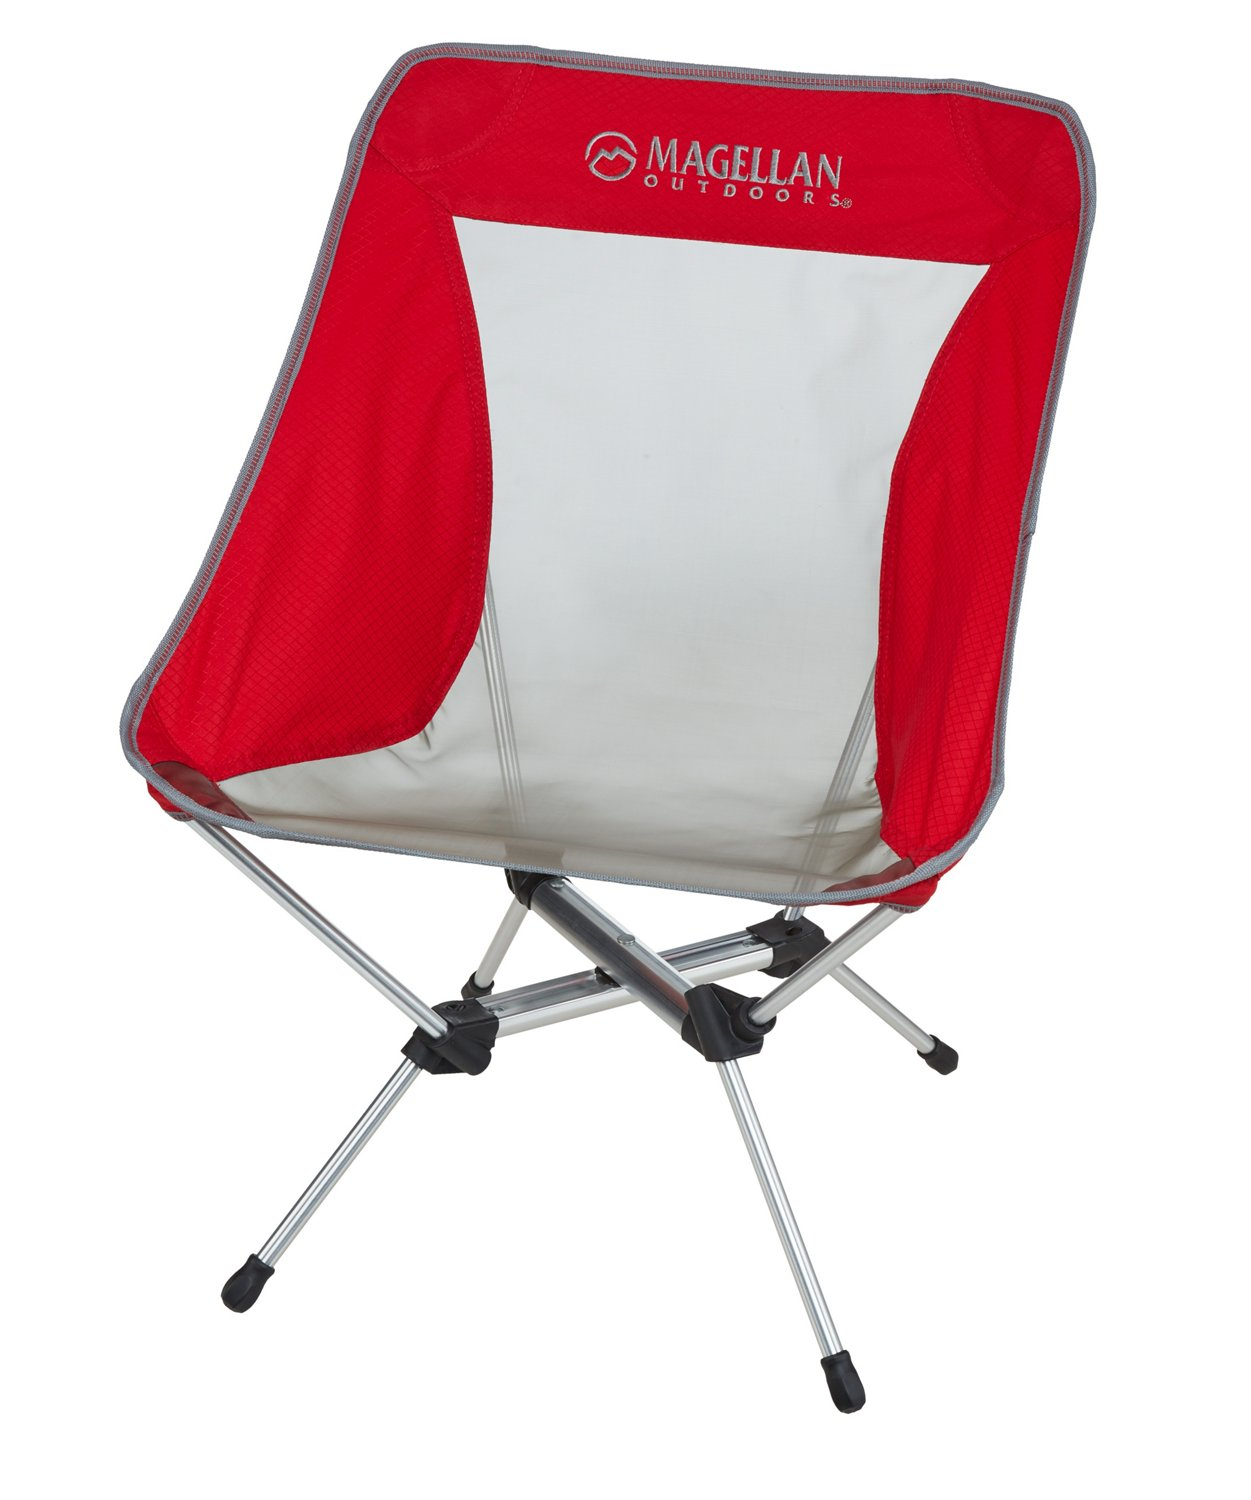 best big and tall beach chair hospital style chairs folding plastic wooden fabric metal display product reviews for magellan outdoors burrito